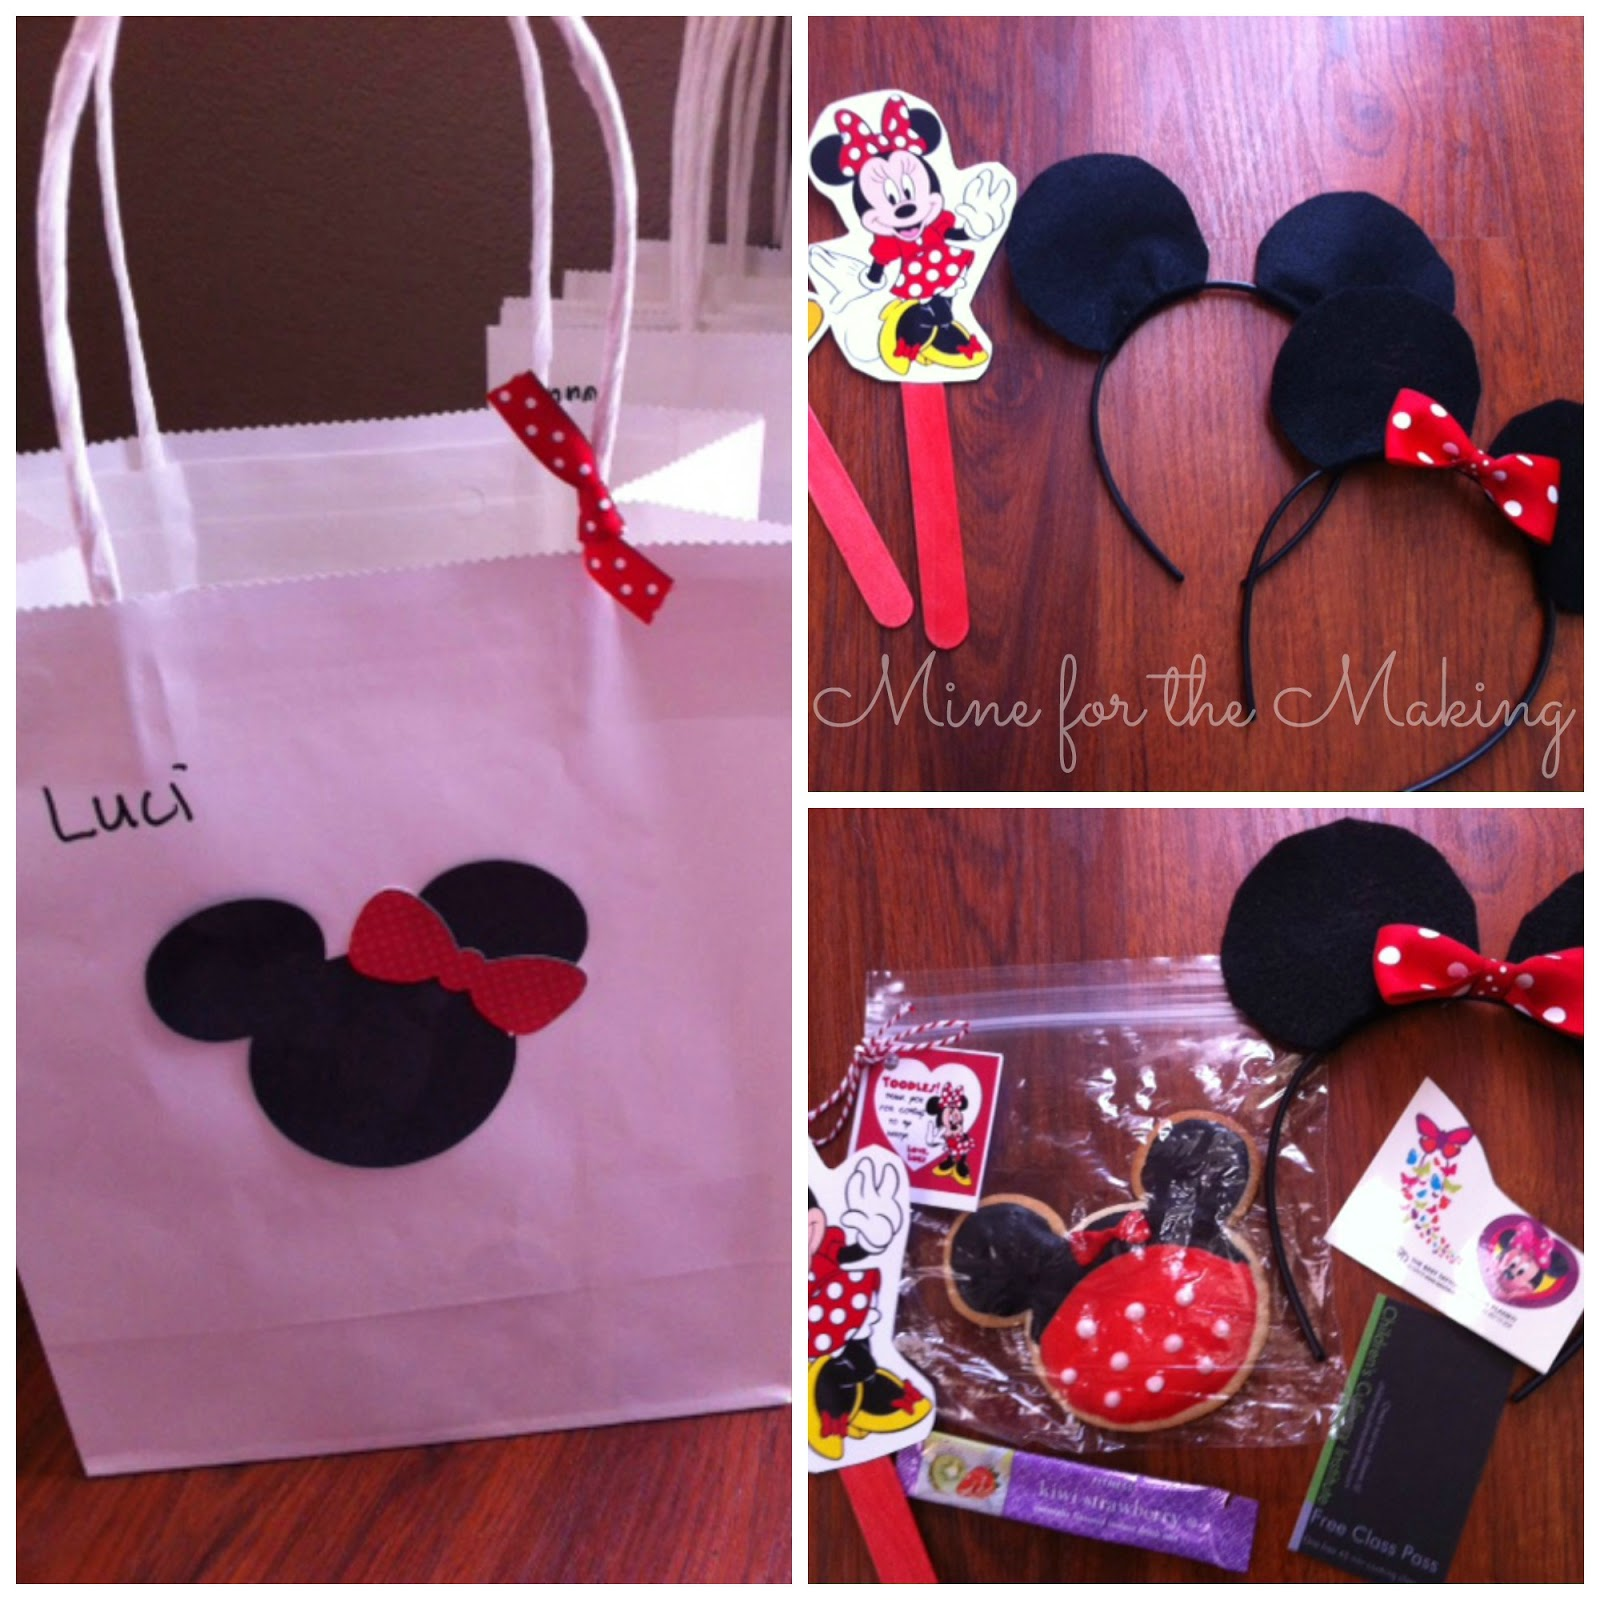 I Made The Goodie Bags Using White Gift From Dollar Store And Cut Out Minnie Faces Ribbon Super Easy Inexpensive